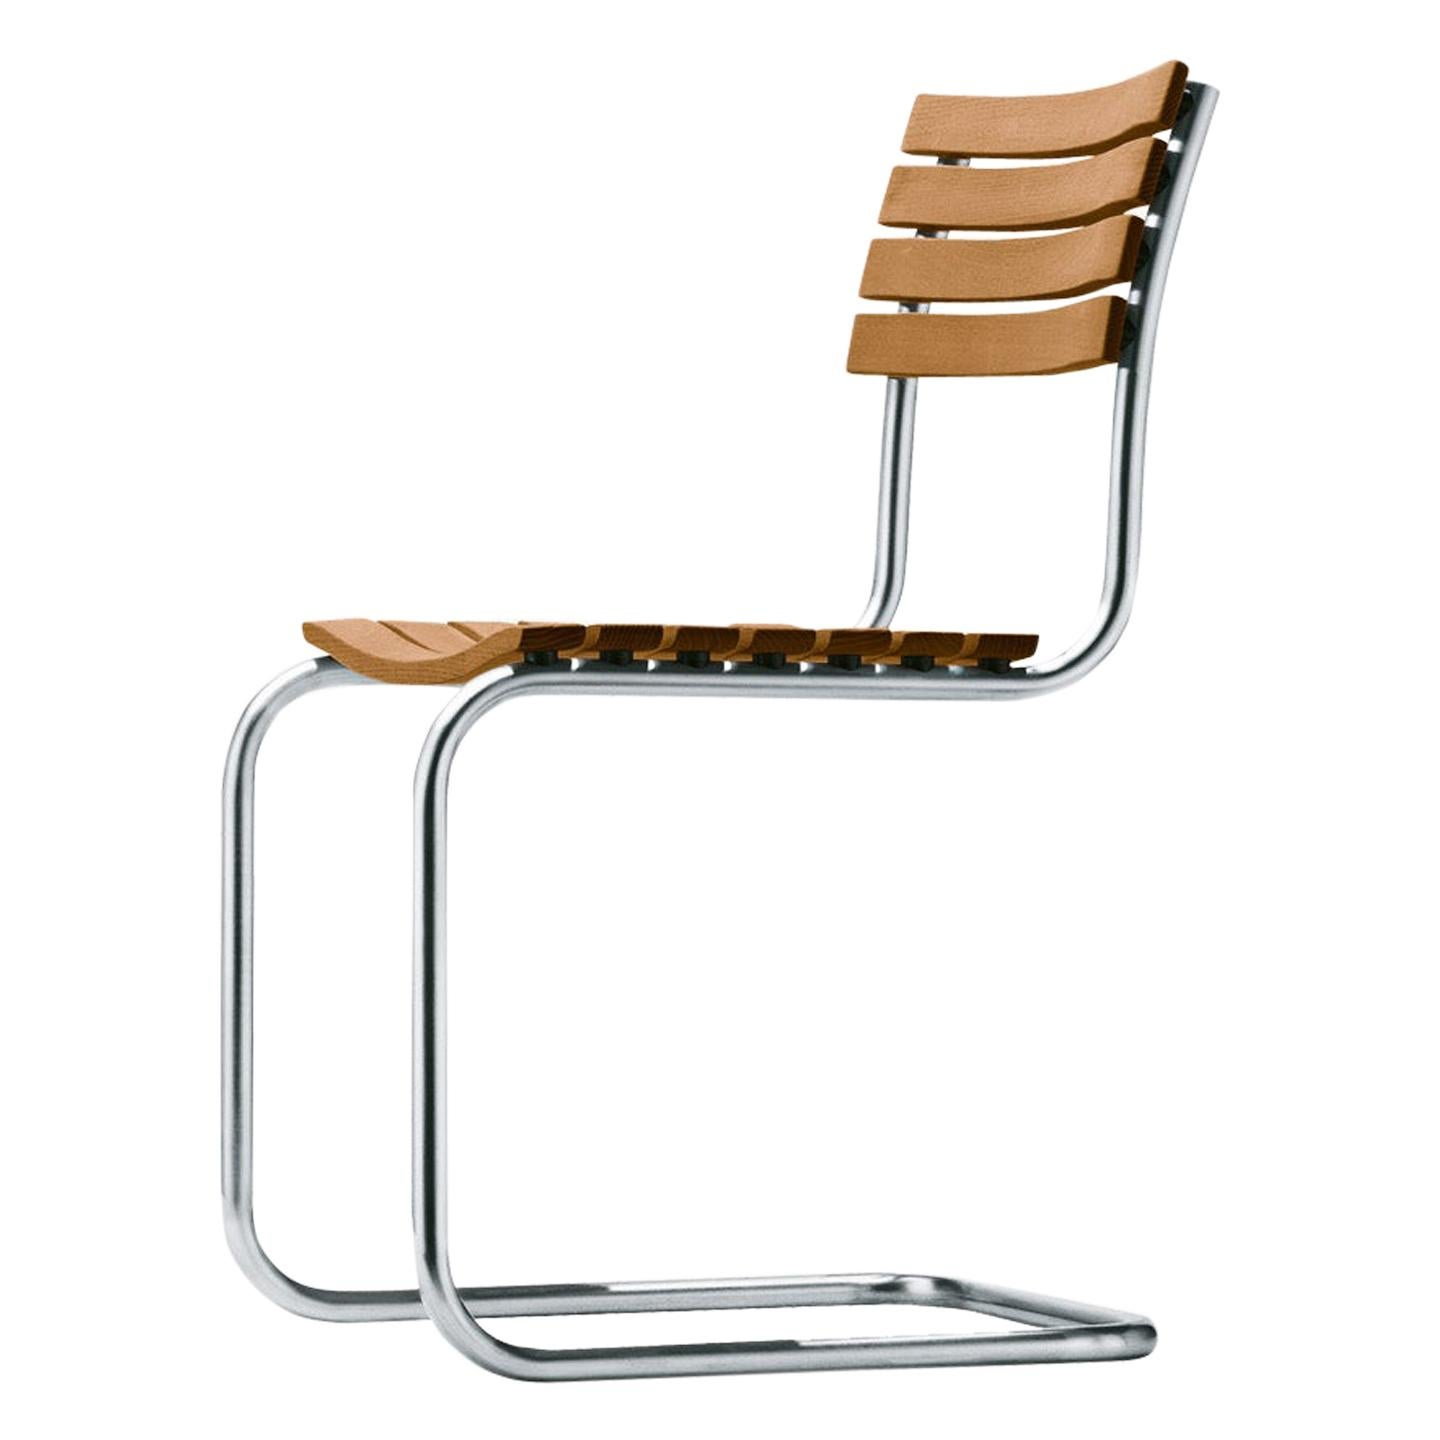 S 40 Cantilever Chair Designed by Mart Stam